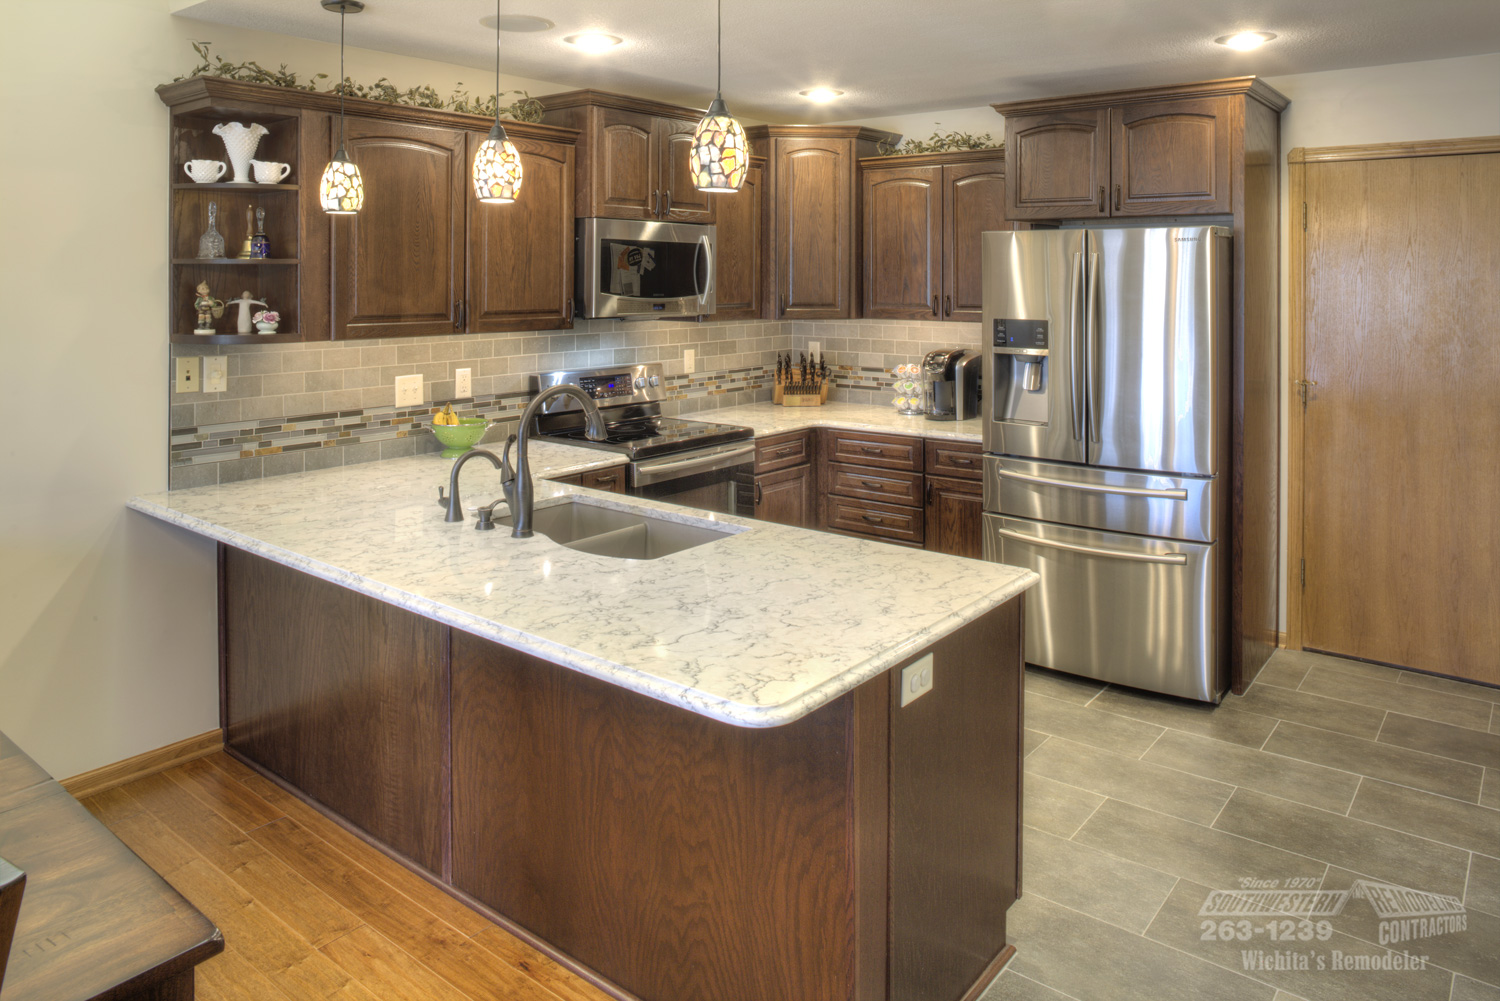 Charmant 1. Kitchen Remodeling Wichita Home Remodeling